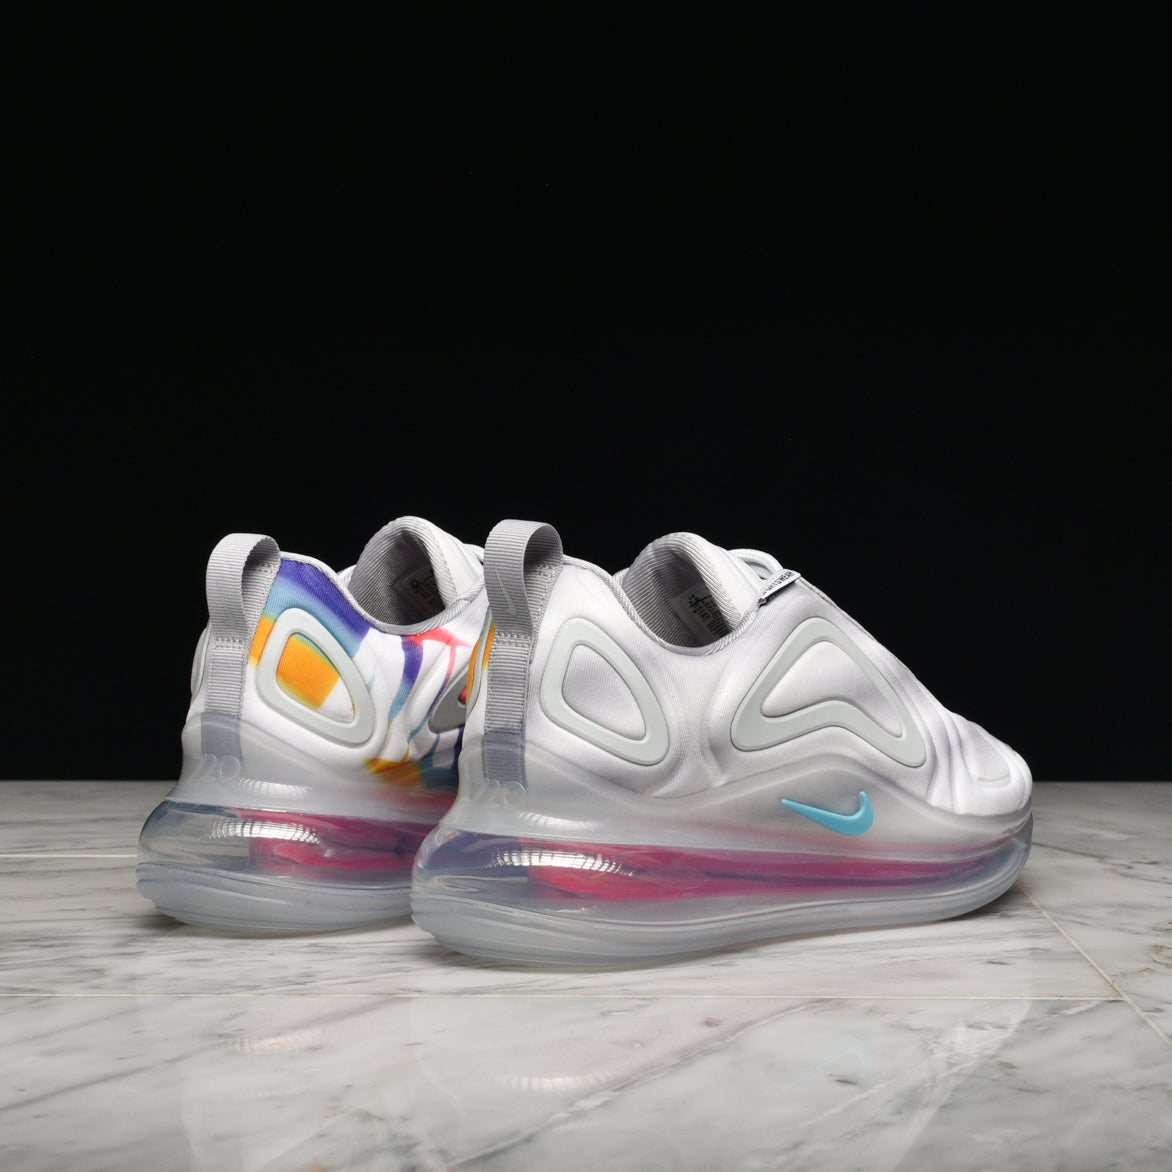 WMNS AIR MAX 720 - WOLF GREY / TEAL NEBULA